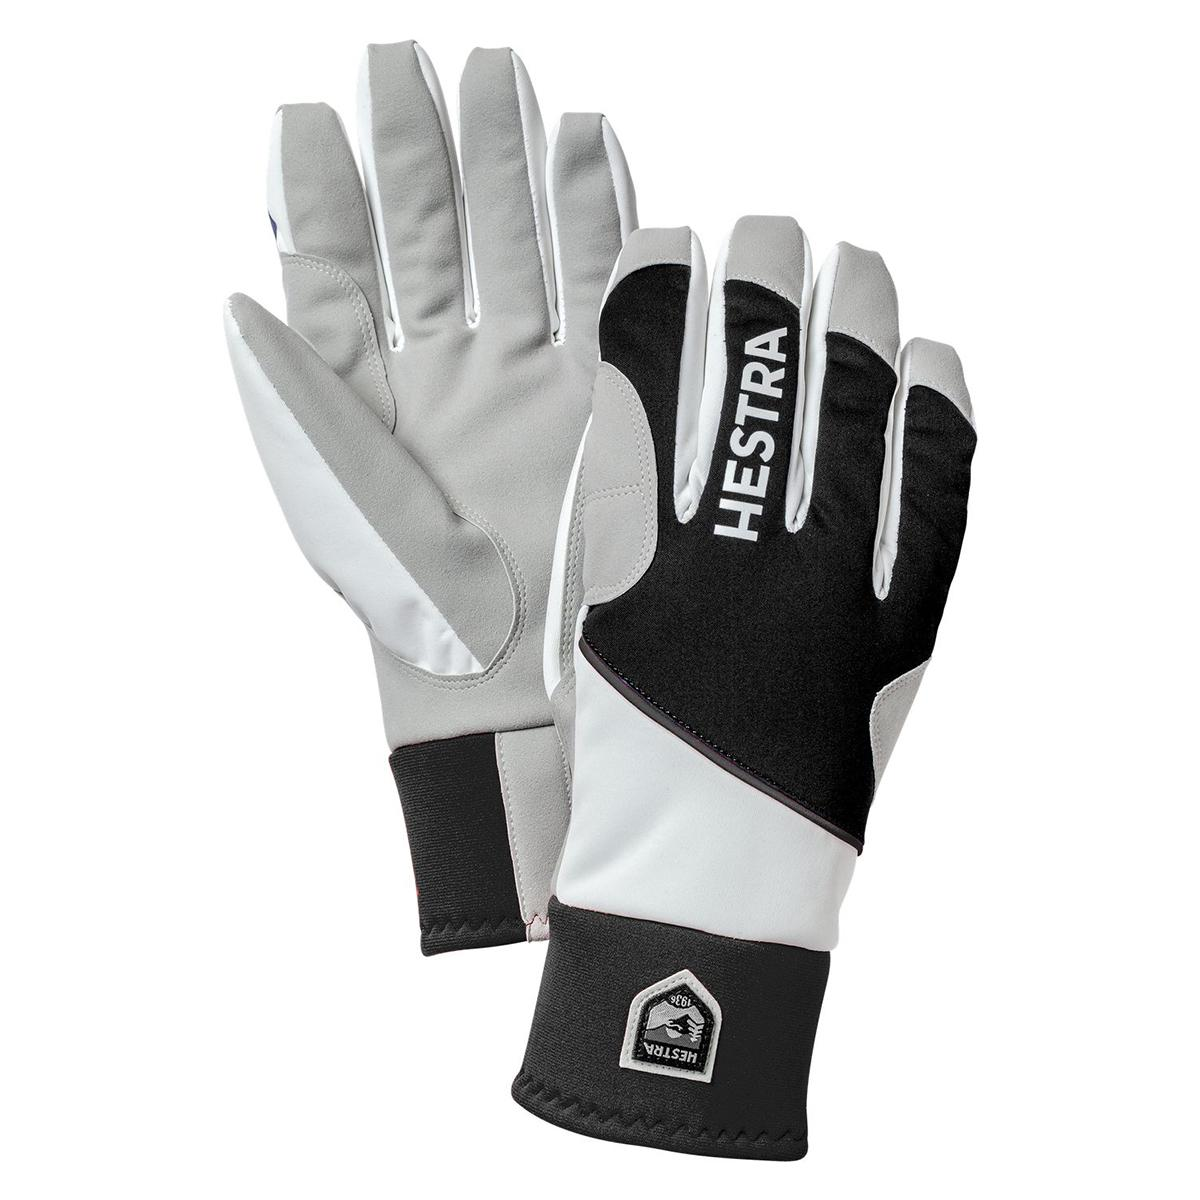 Hestra Comfort Tracker Glove in black and ivory